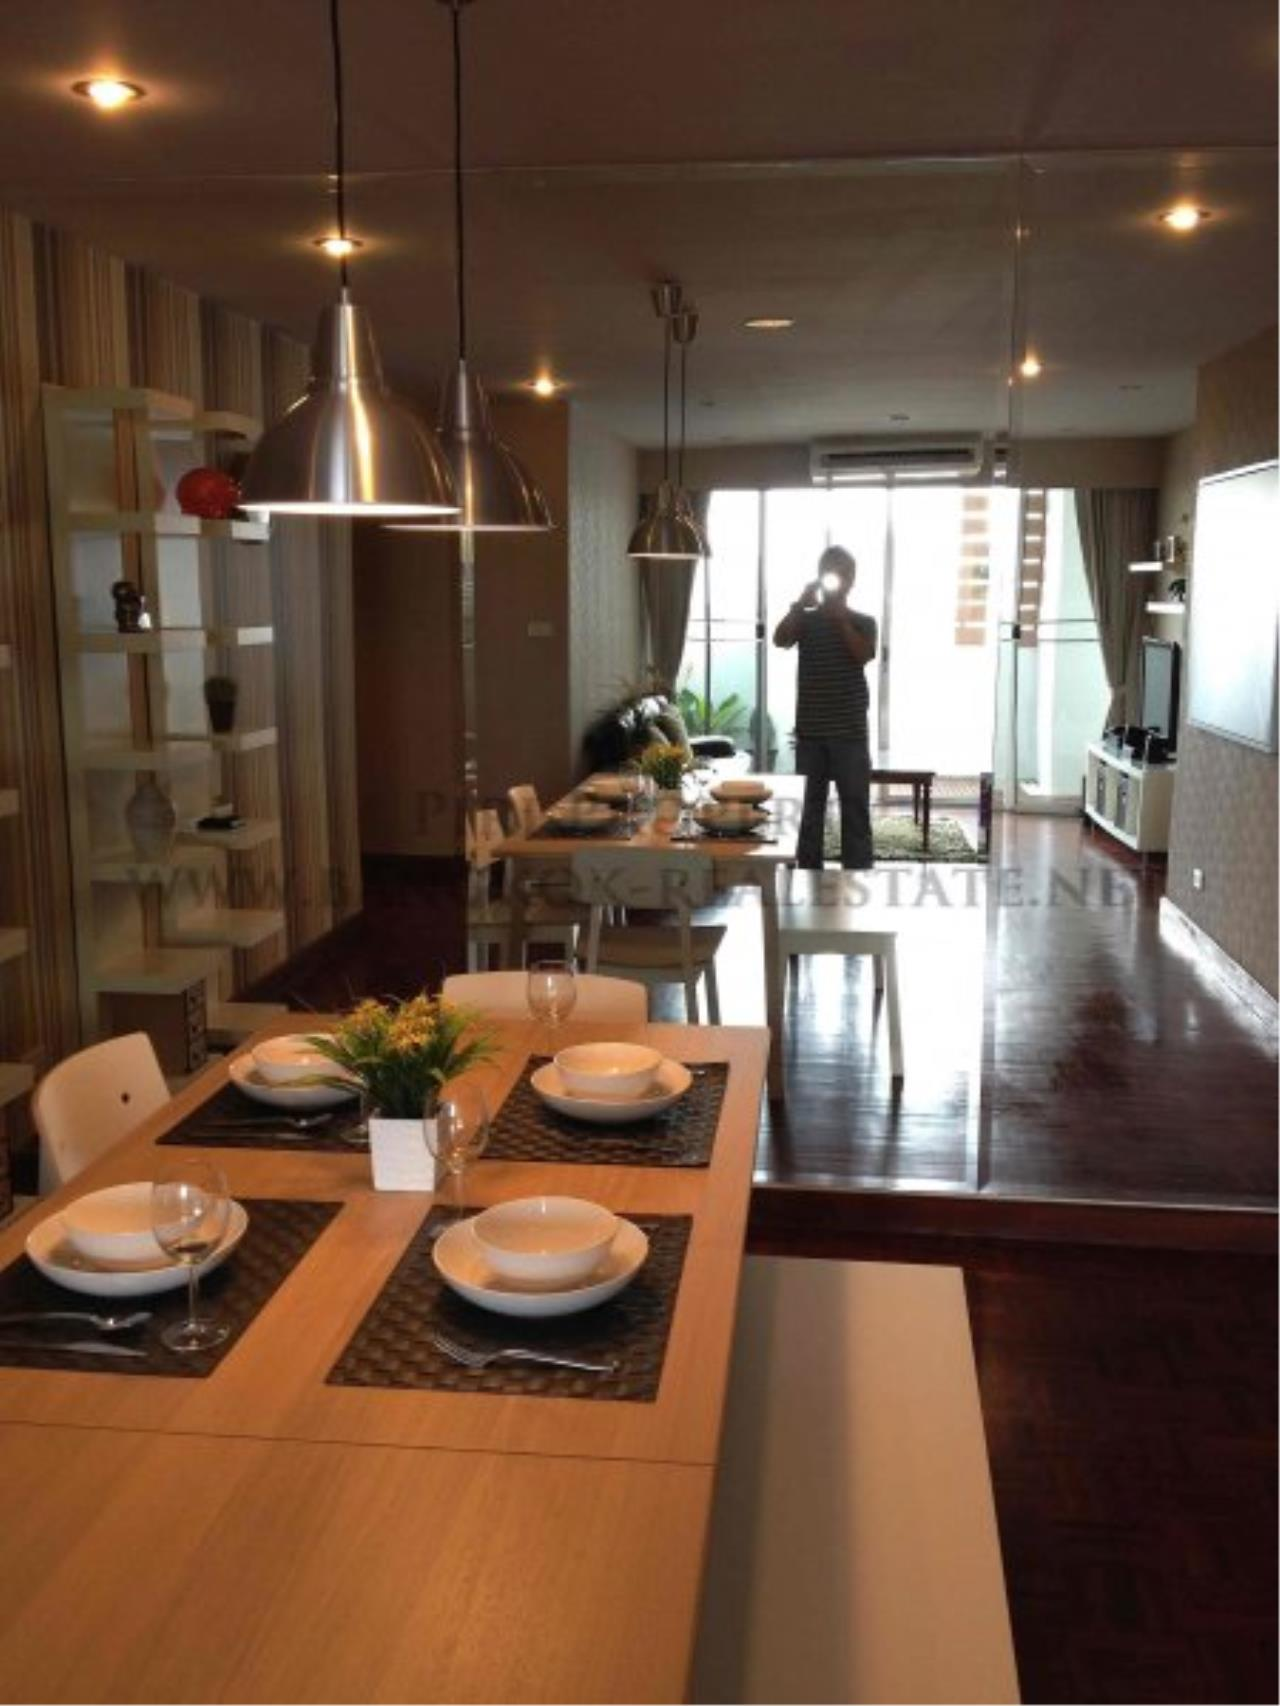 Piri Property Agency's DS Tower 2 - Renovated and Condo for Sale - 3BR 4